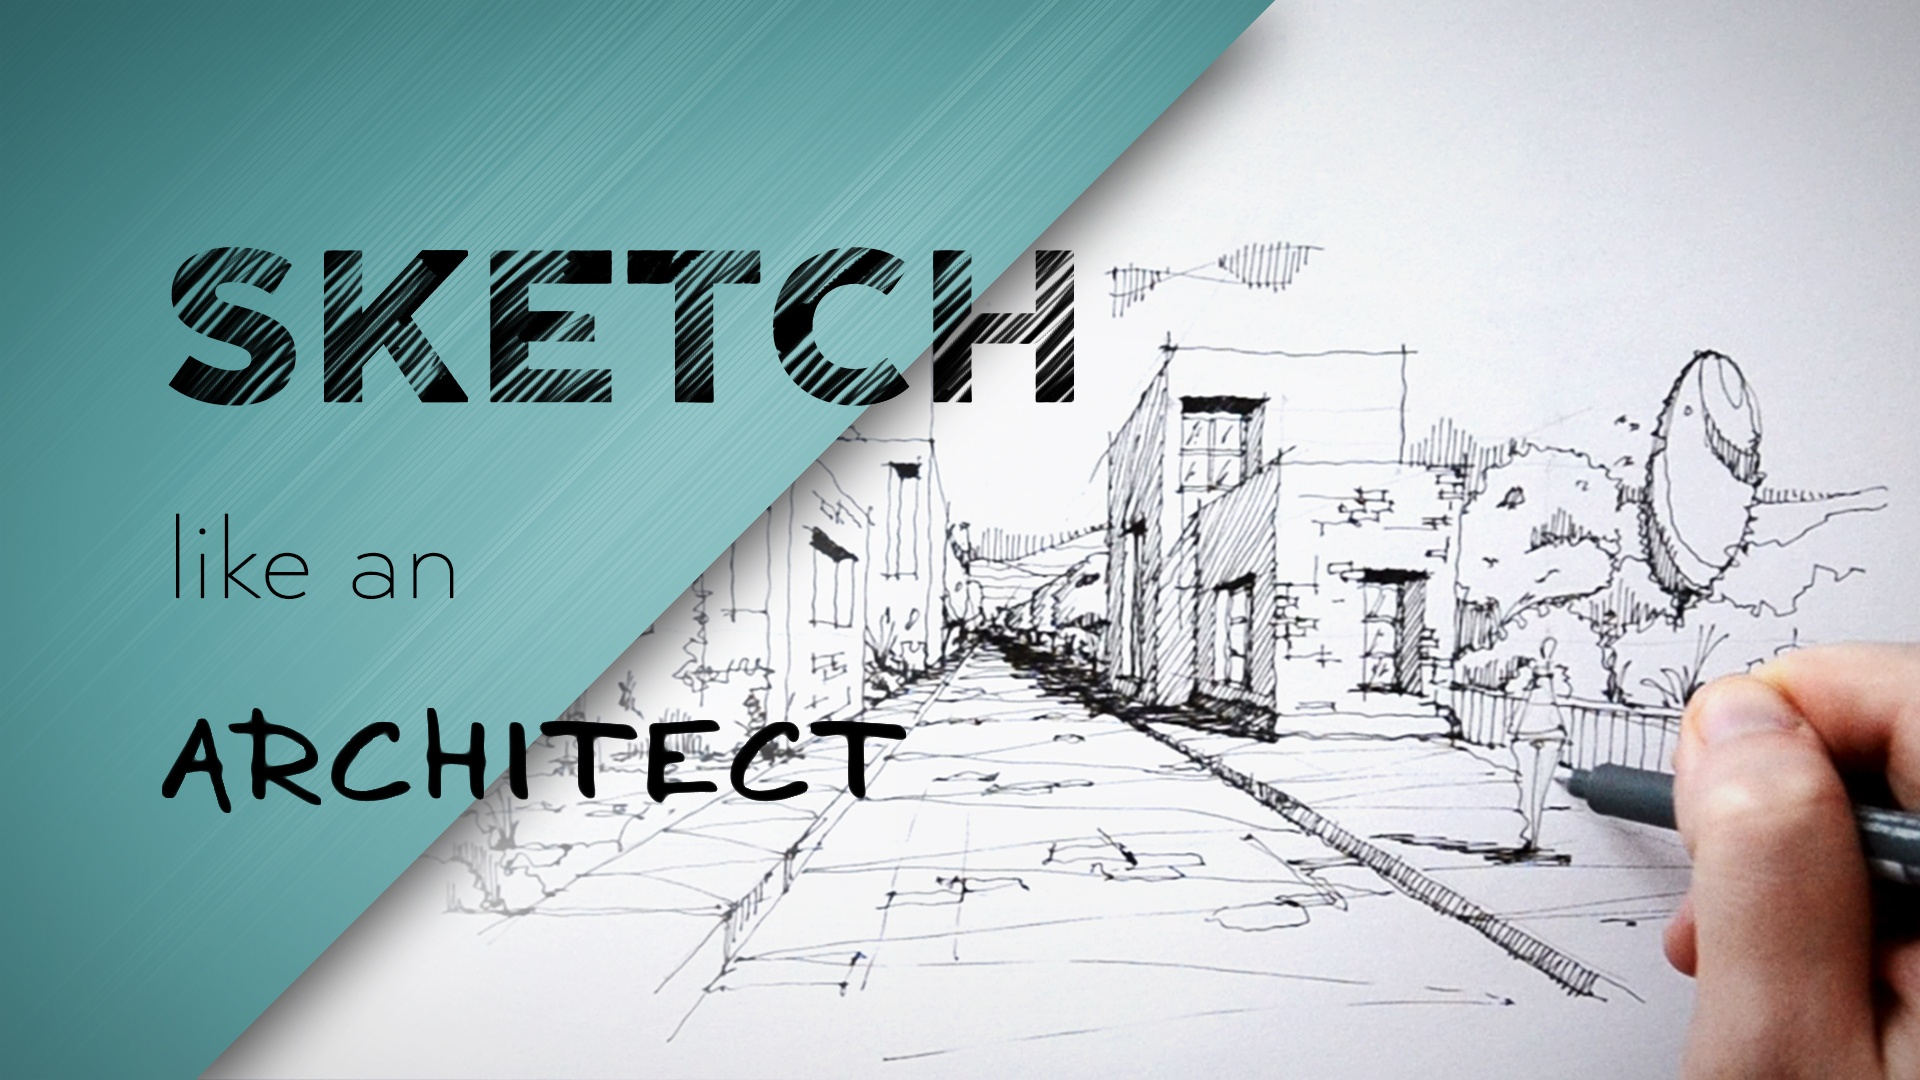 PUBLISHED] Sketch Like an Architect: Step-by-Step from Lines to ...